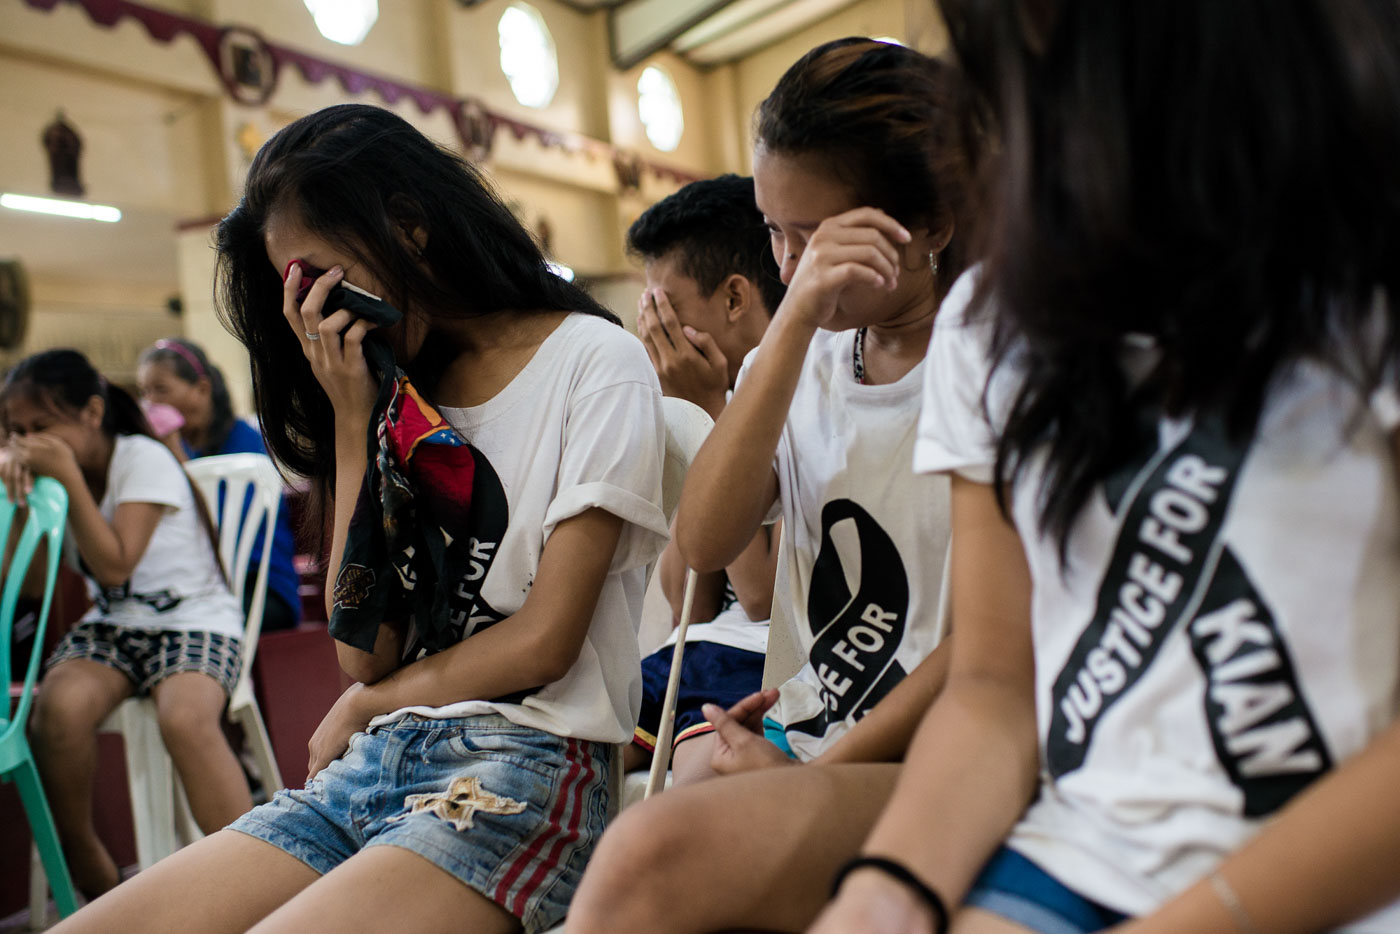 GRIEF. Friends and classmates of Kian delos Santos become emotional during the mass. Photo by Eloisa Lopez/Rappler